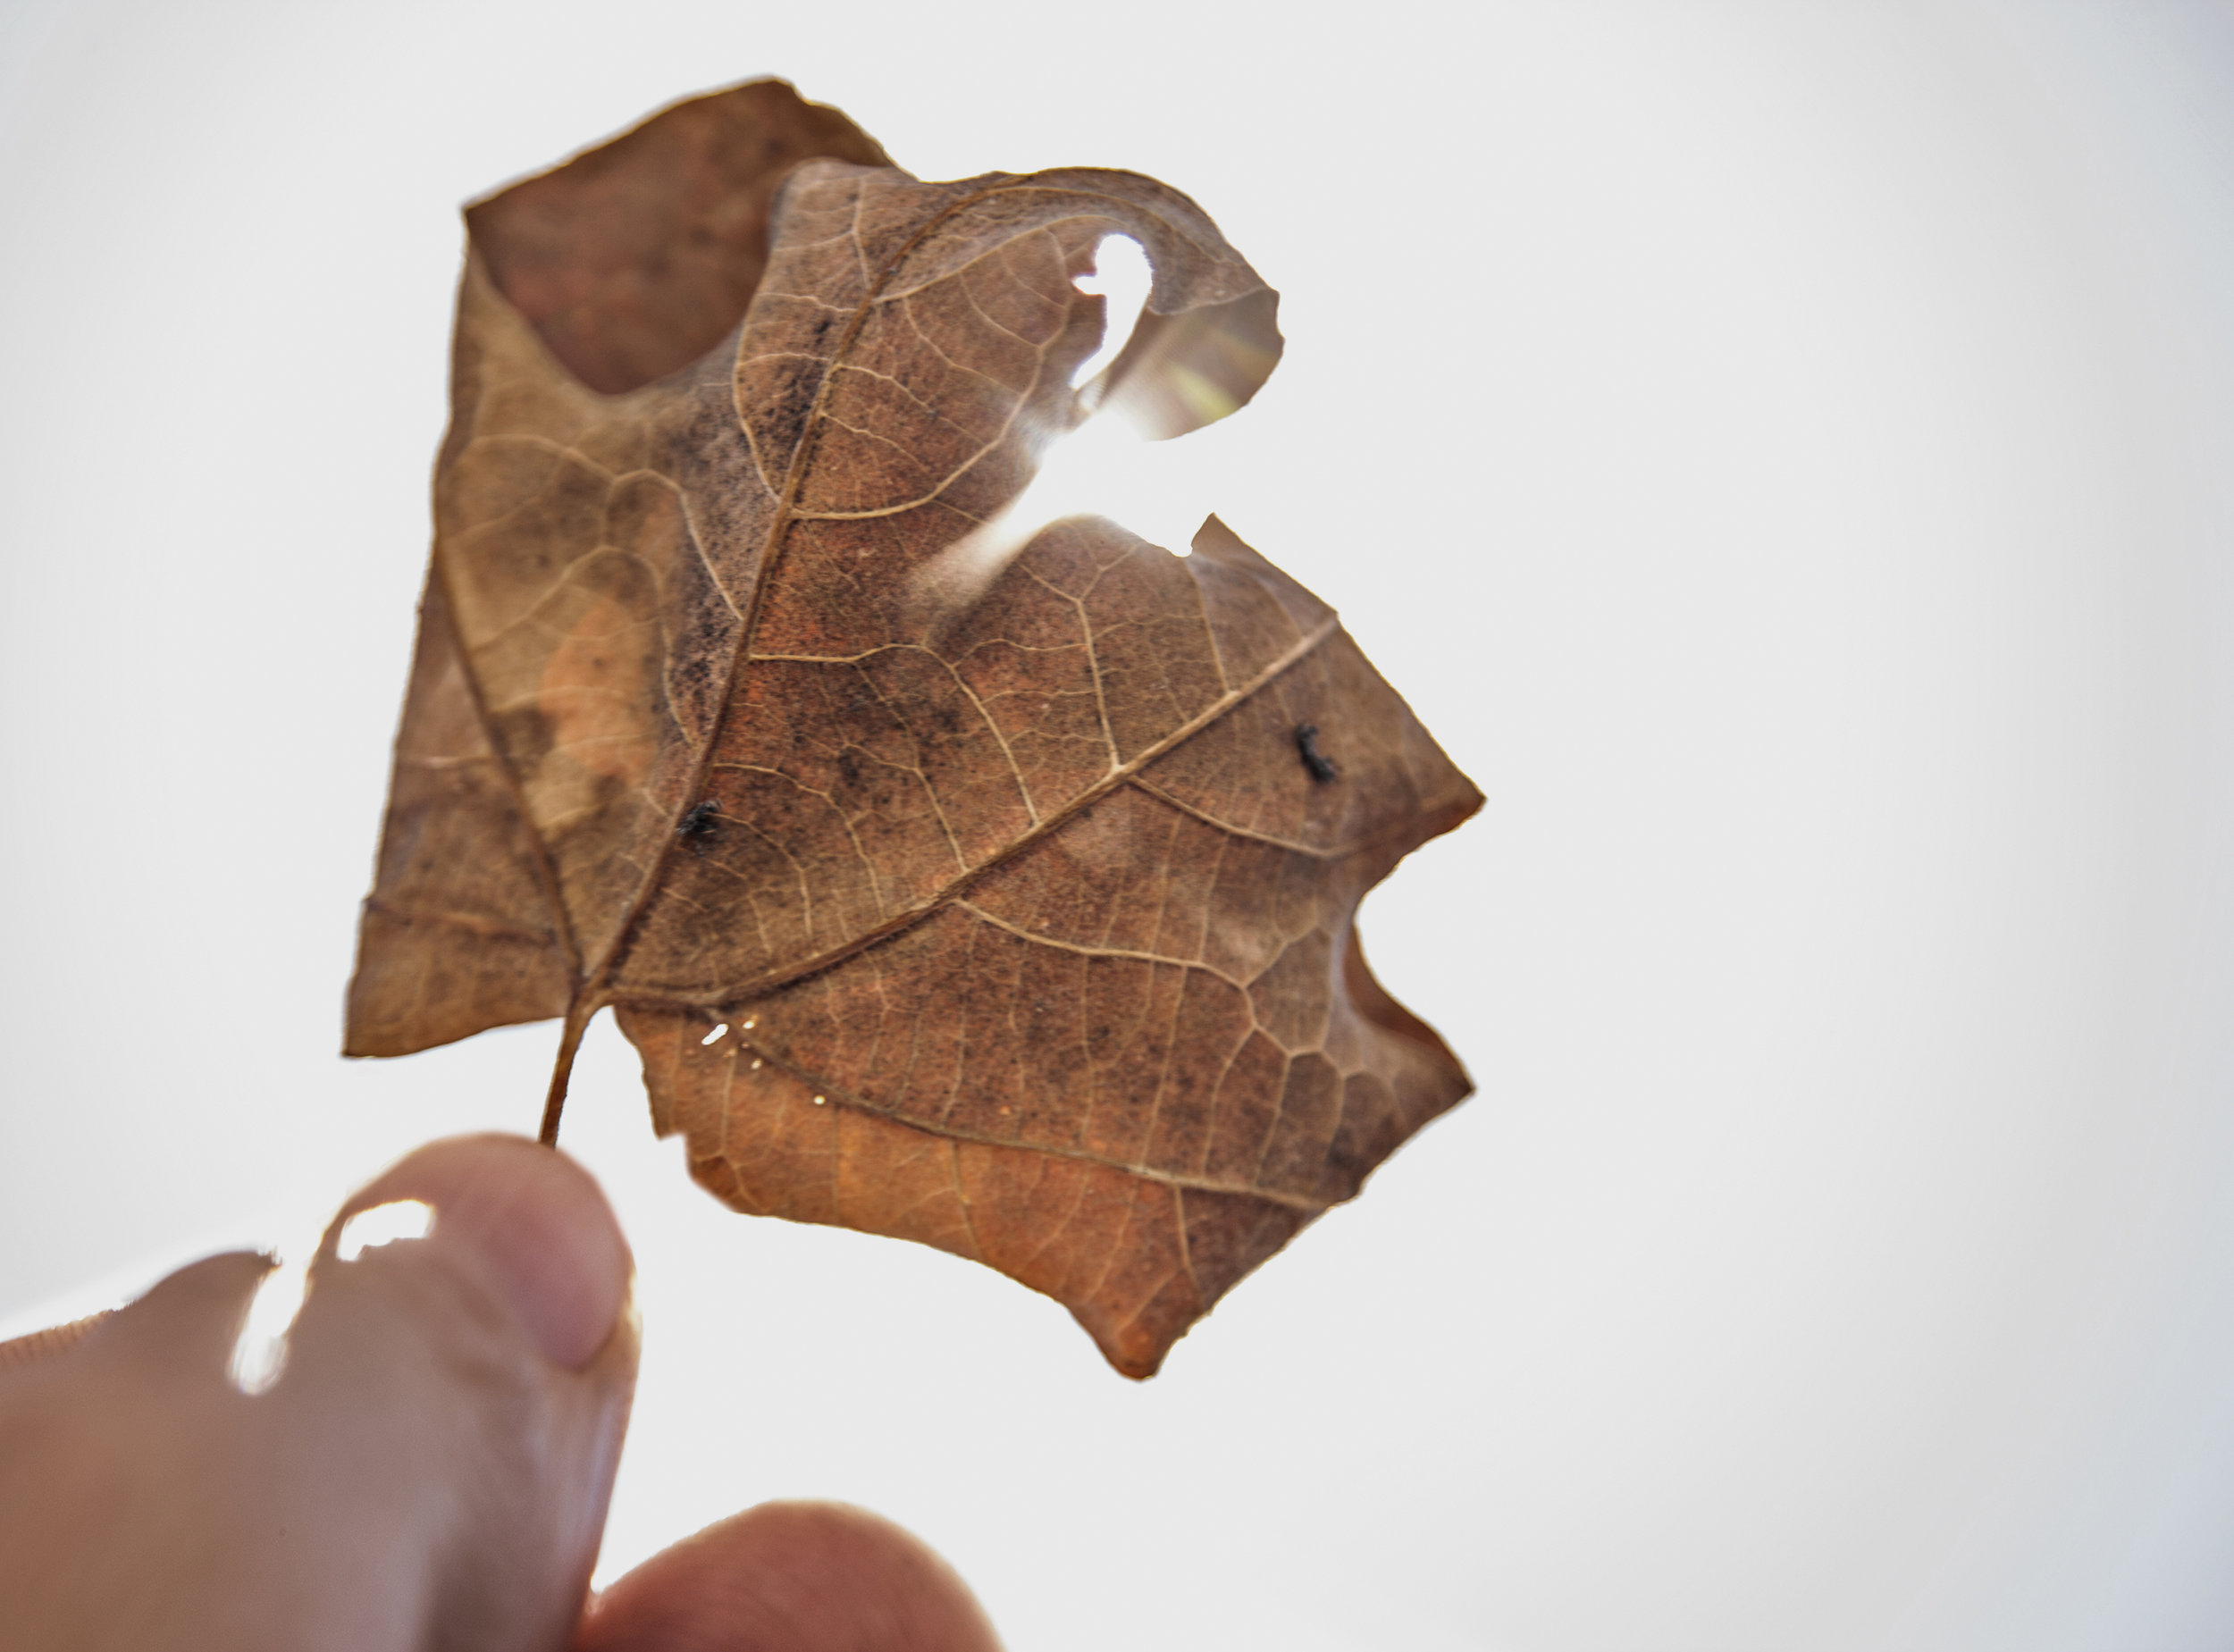 'At age 8, picking up a leaf... - The way I see my surroundings.